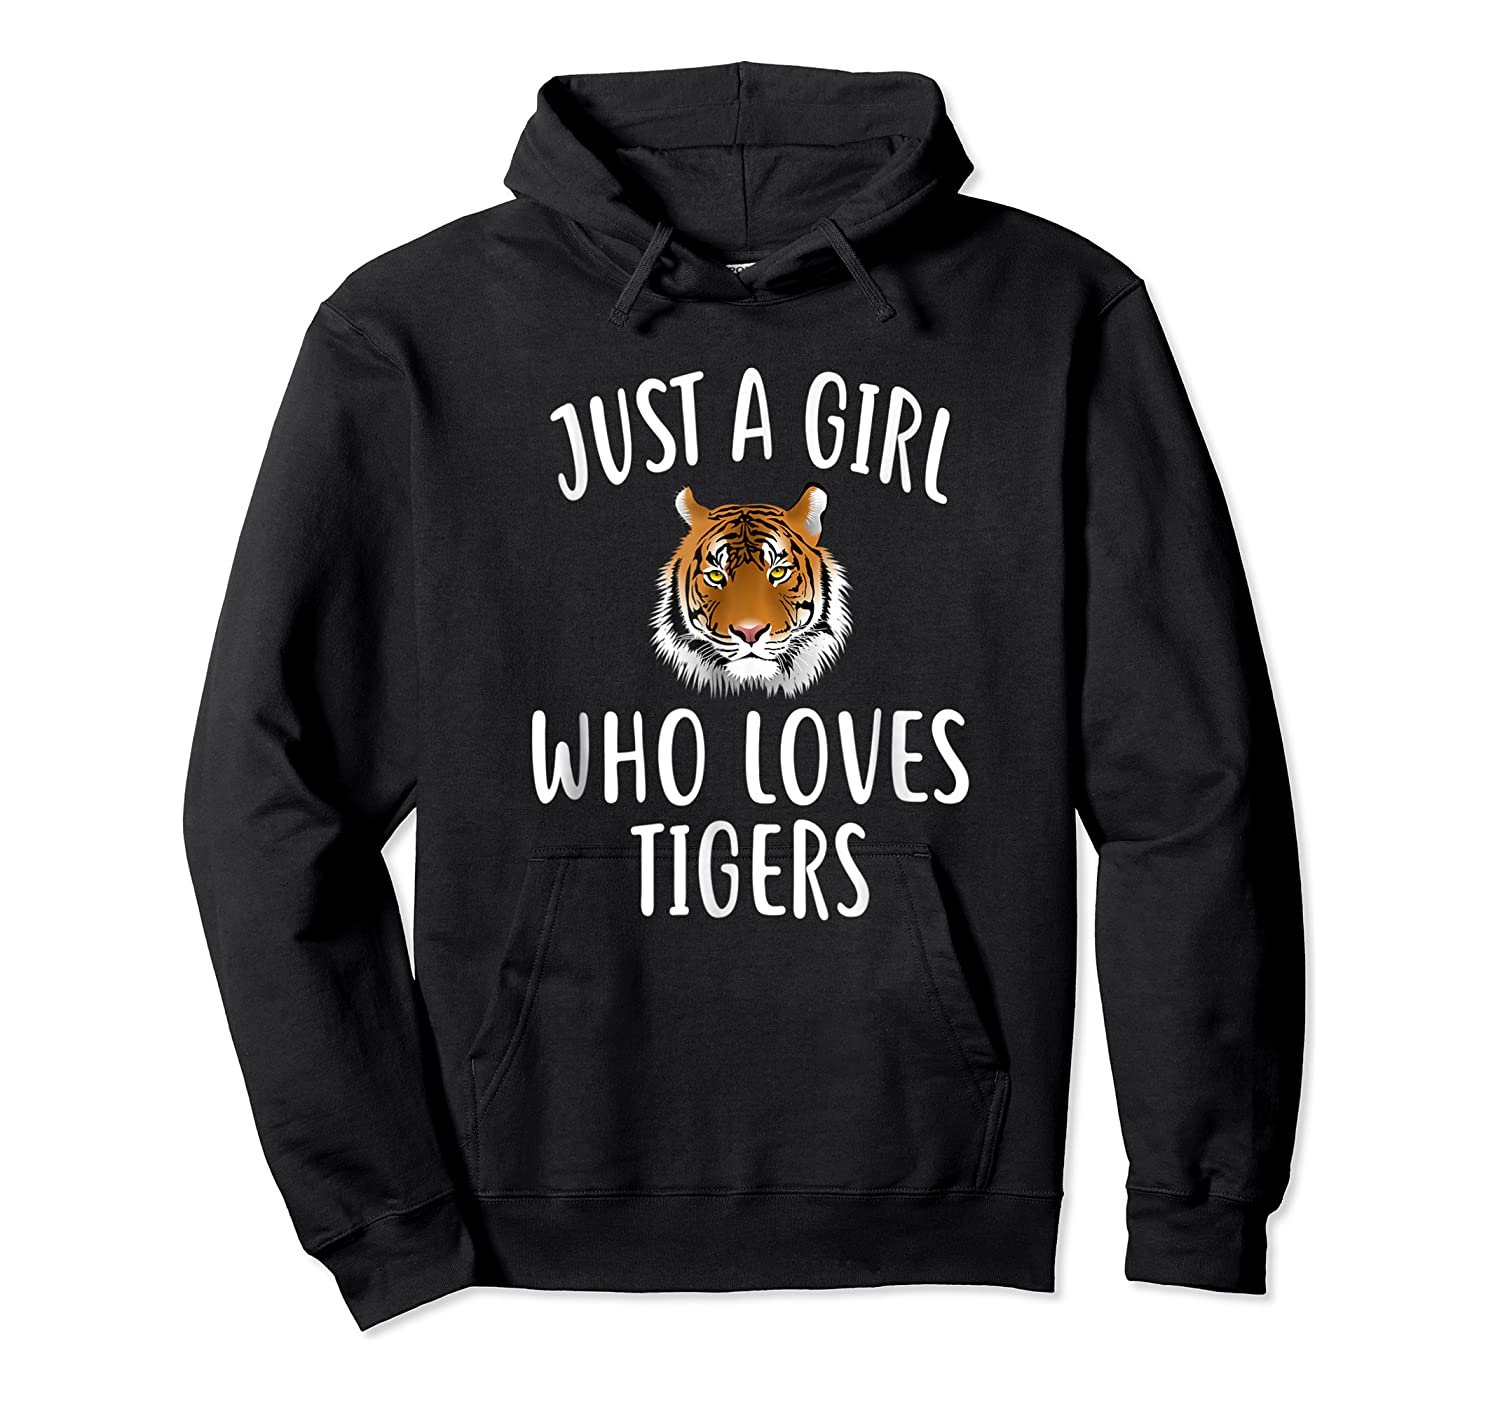 Just A Girl Who Loves Tigers Funny Tiger Shirts Unisex Pullover Hoodie